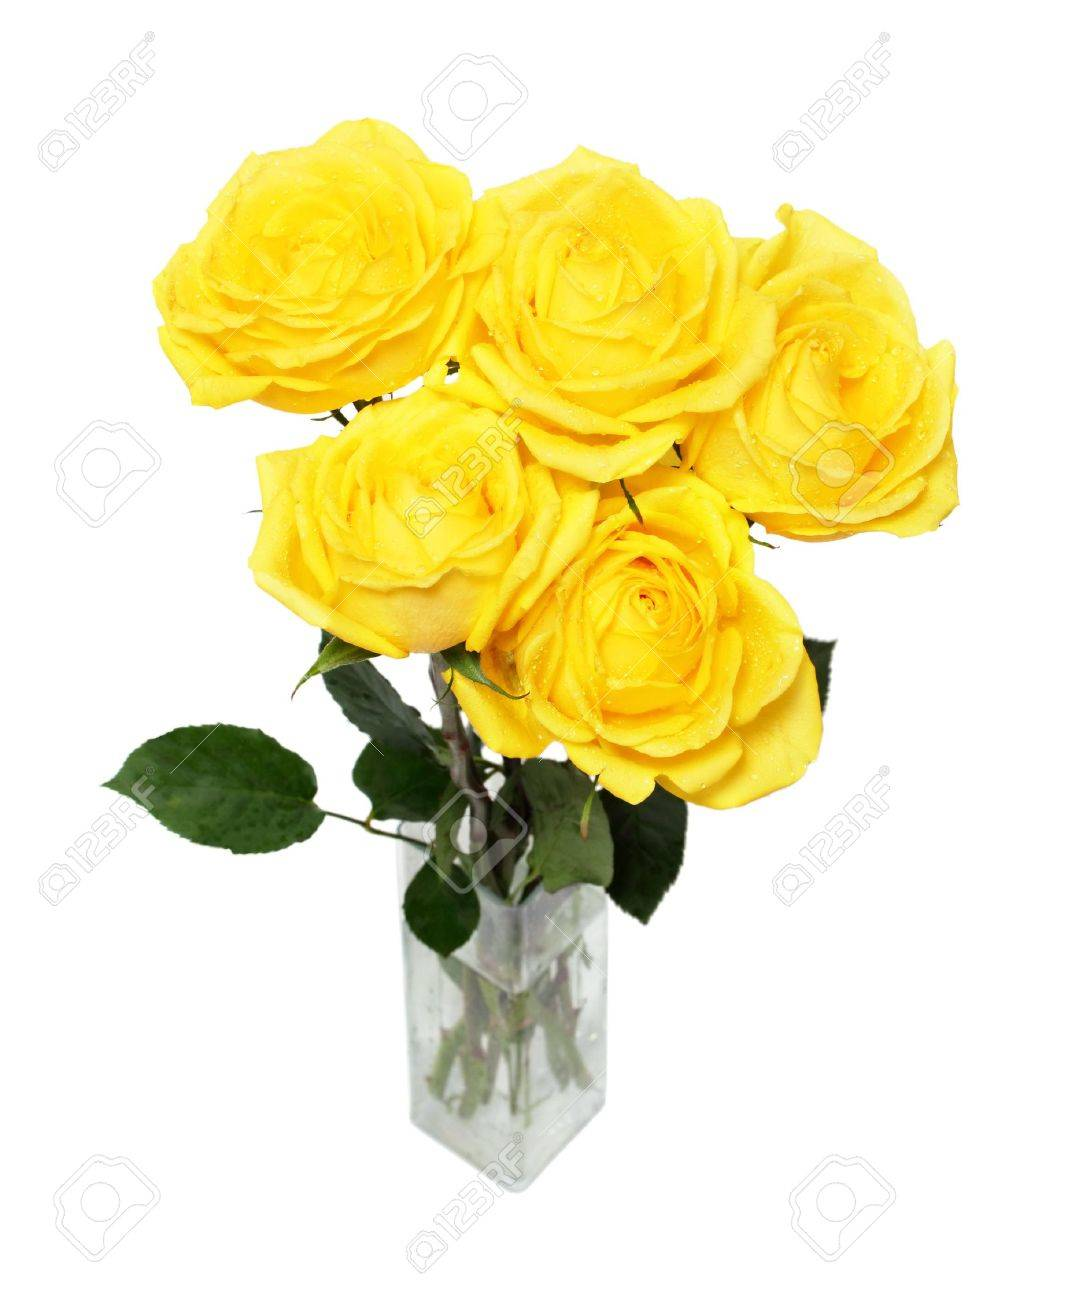 bouquet of yellow roses isolated on white - 12523274